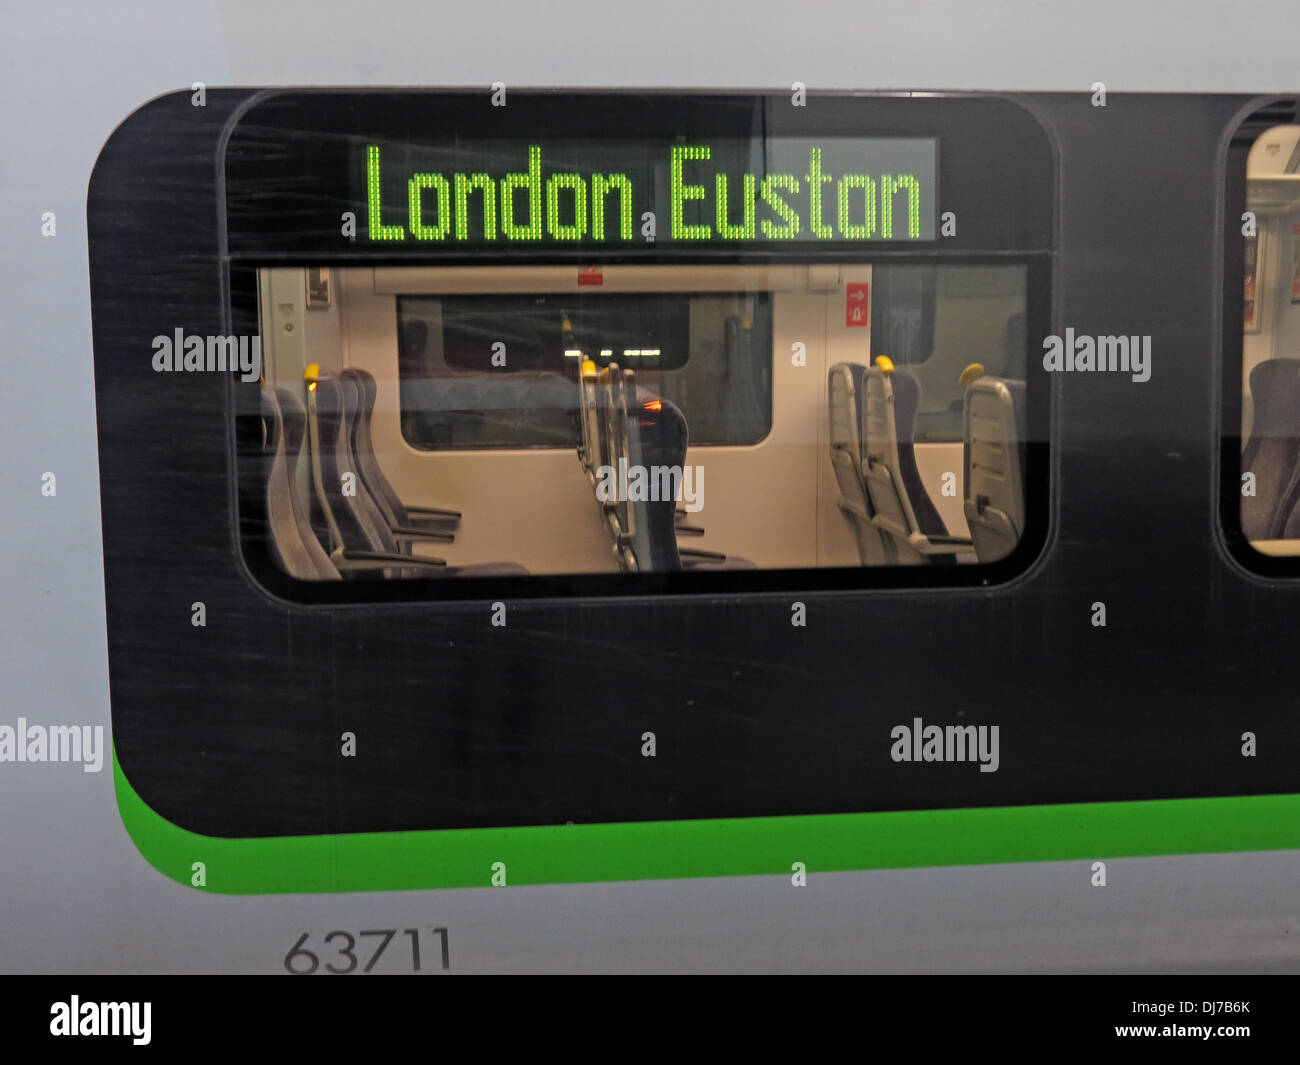 HS2,high,speed,rail,HS,investment,Euston,station,England,UK,remodeling,remodel,franchise,train,operating,company,United,Kingdom,owned,by,Govia,operating,the,West,Midlands,West,Coast,Main,Line,Silverlink,central,trains,express,Midland,City,Birmingham,New,Street,Lichfield,Wolverhampton,gotonysmith,Buy Pictures of,Buy Images Of